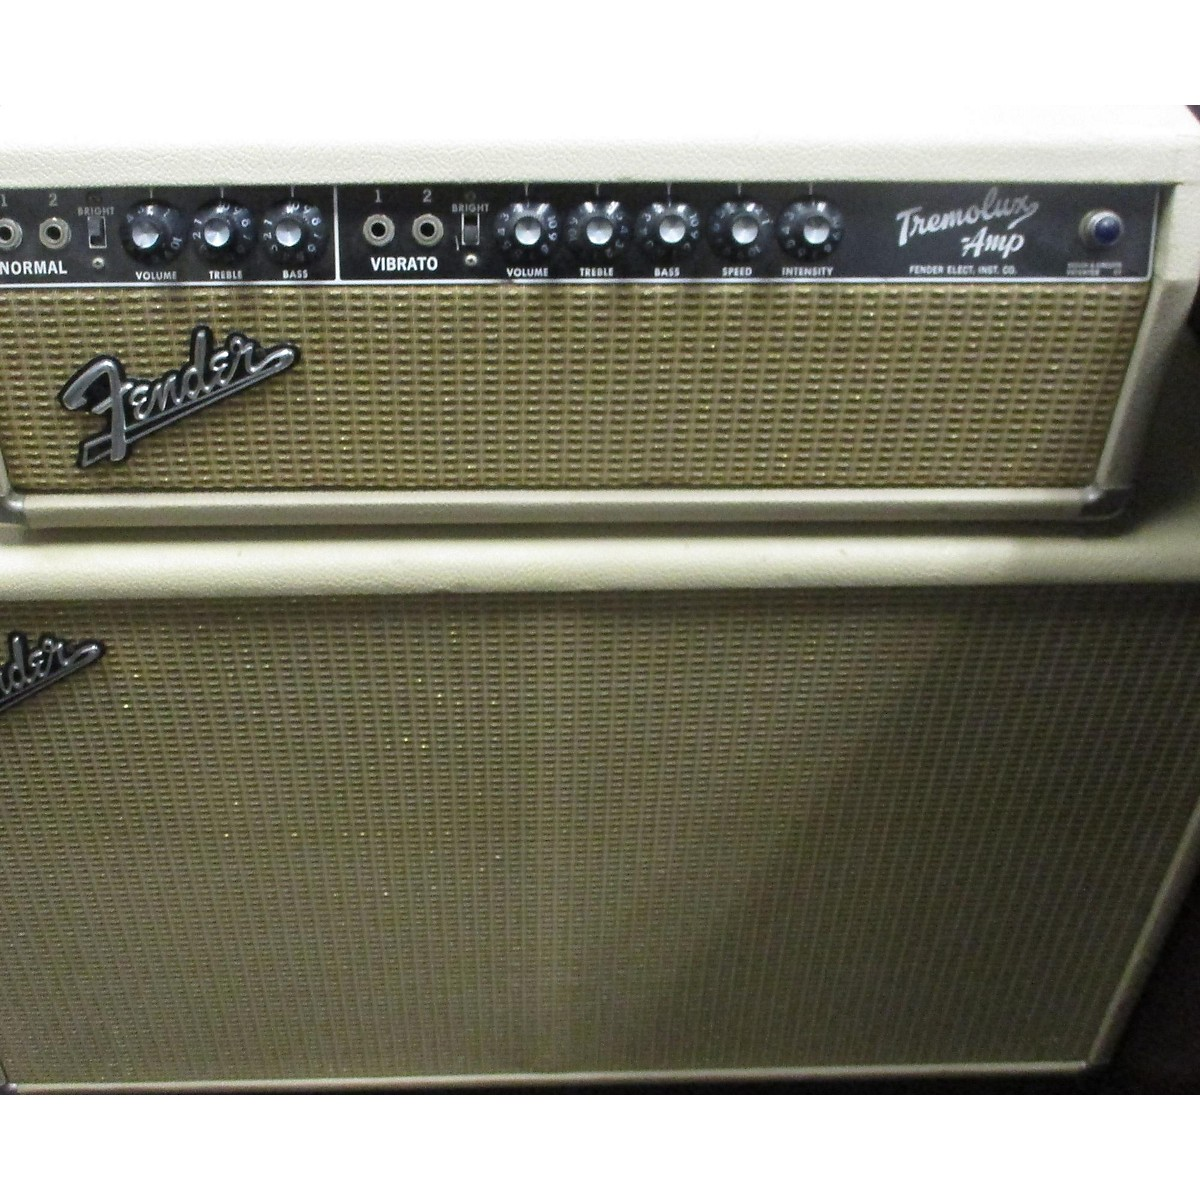 Fender 1964 Tremolux Head (2x12 Cabinet Included)